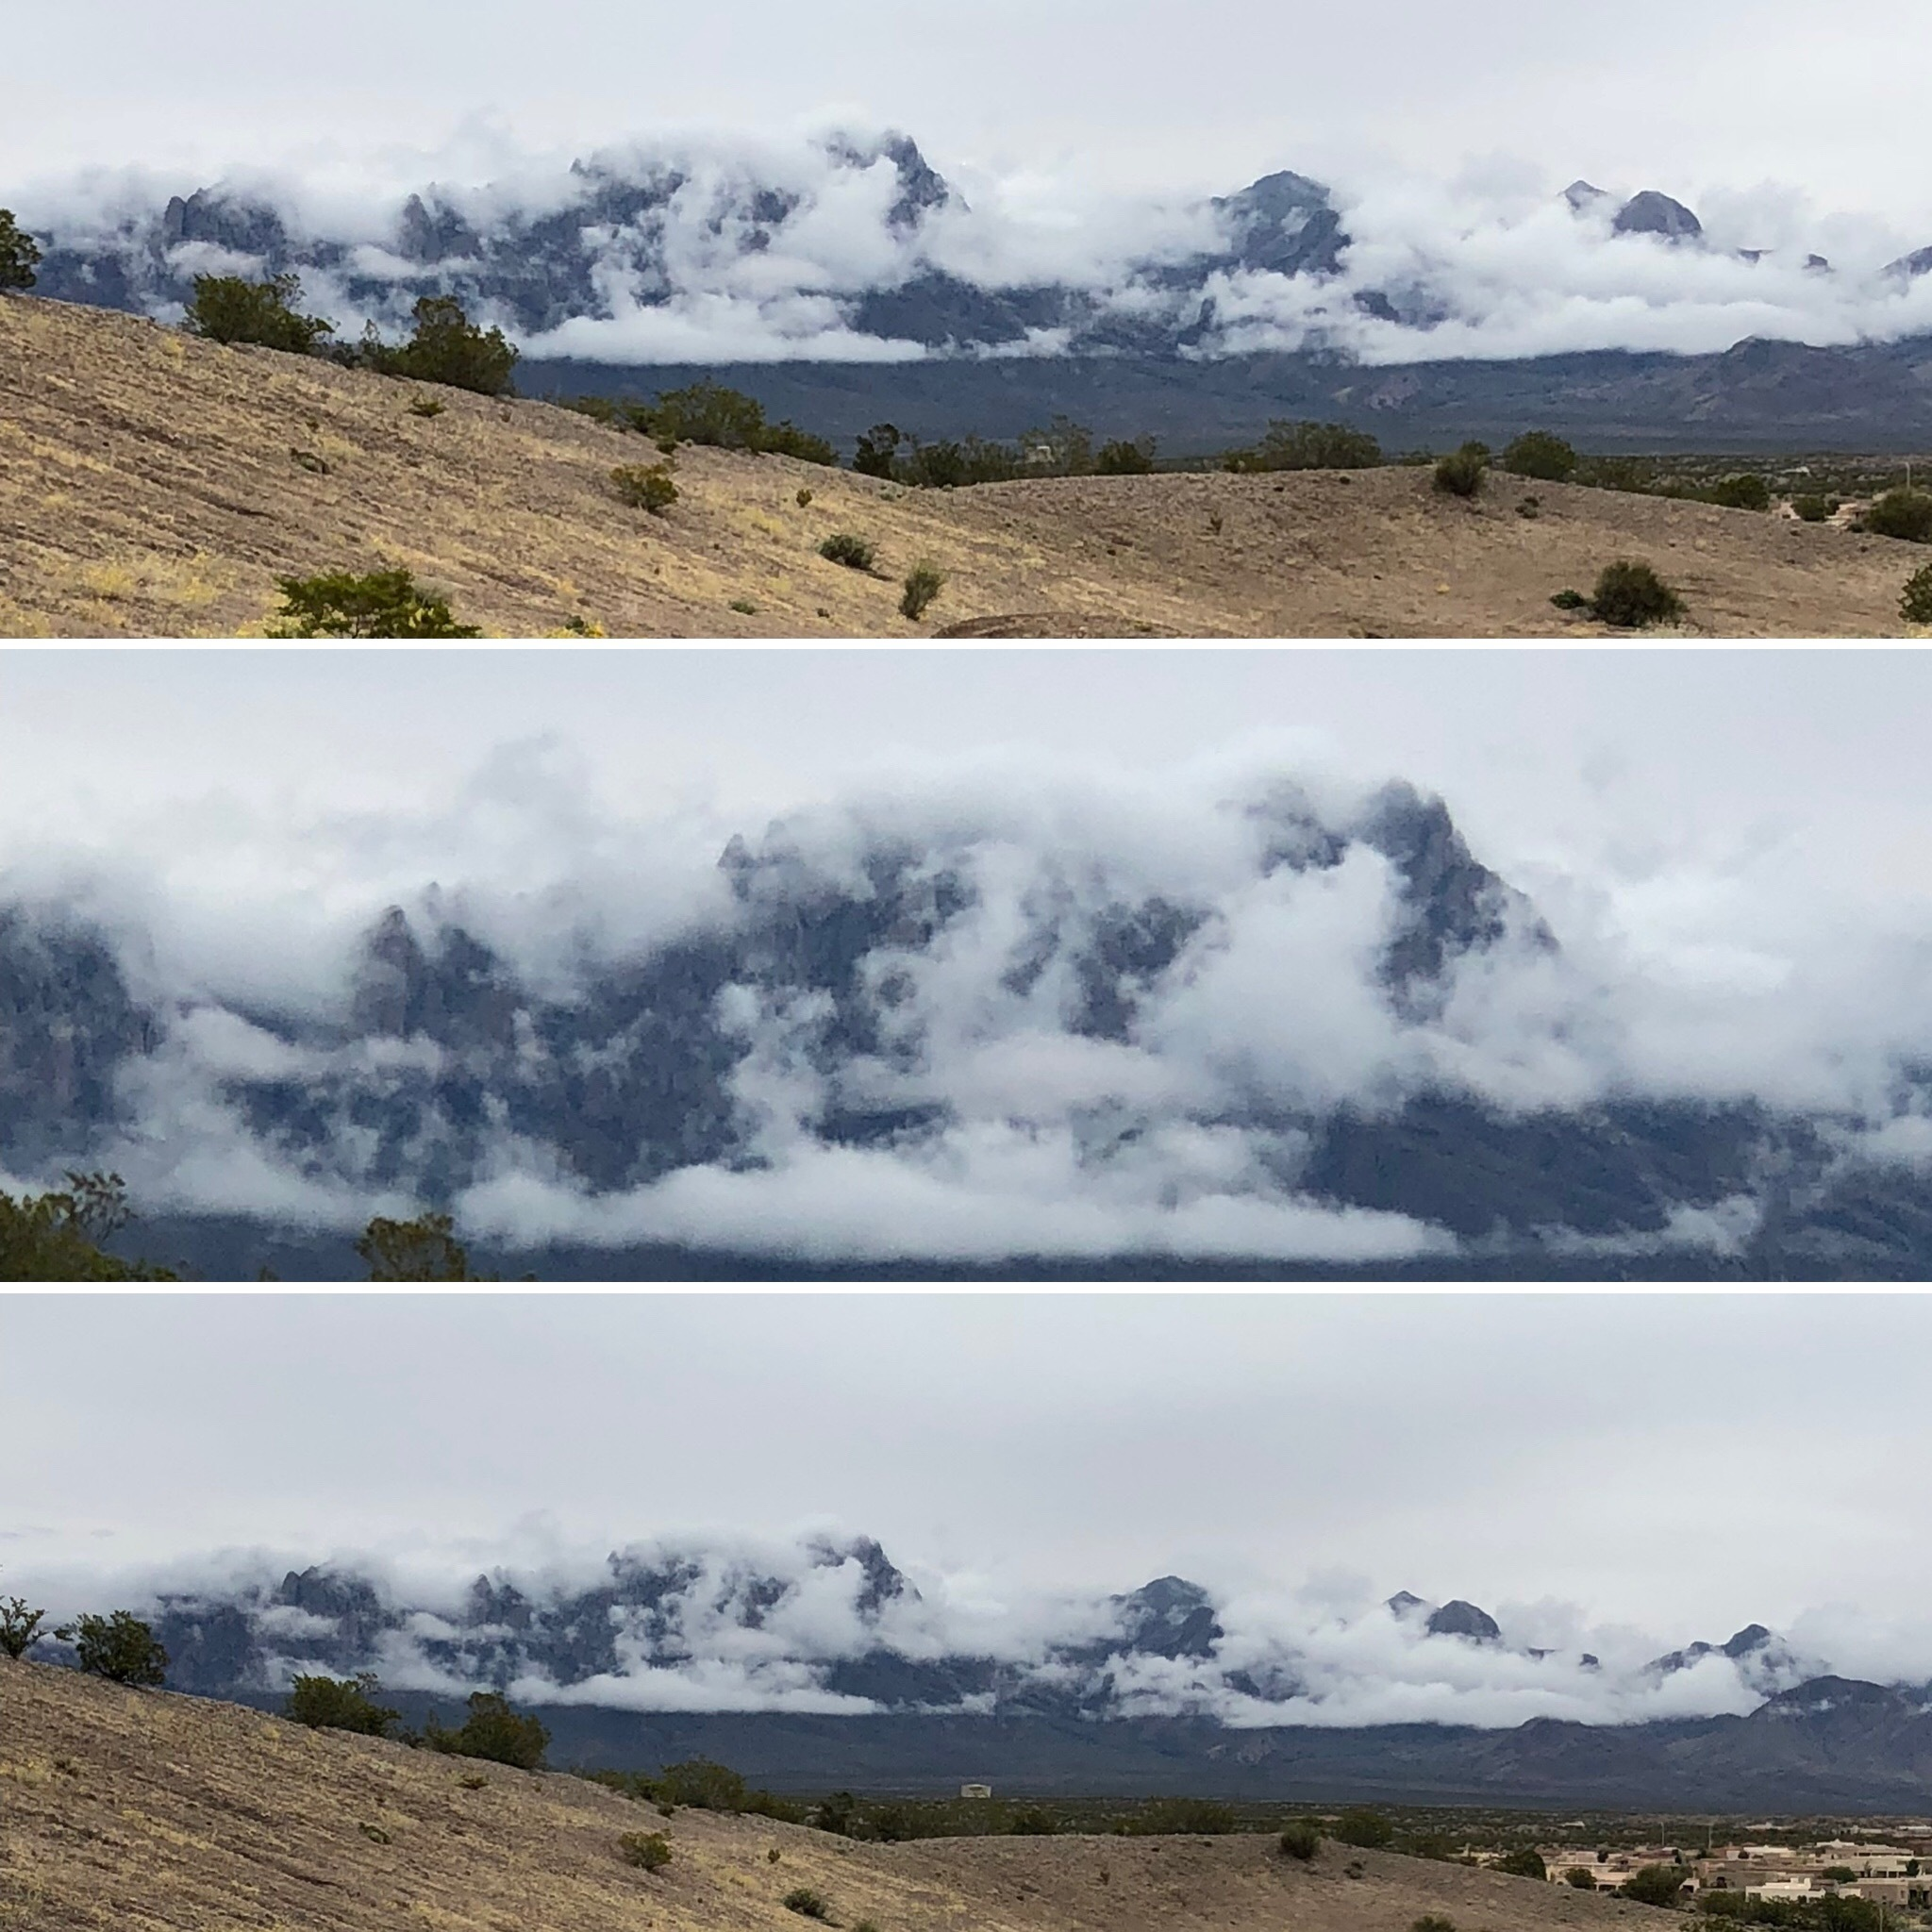 image of clouds covering organ mountains